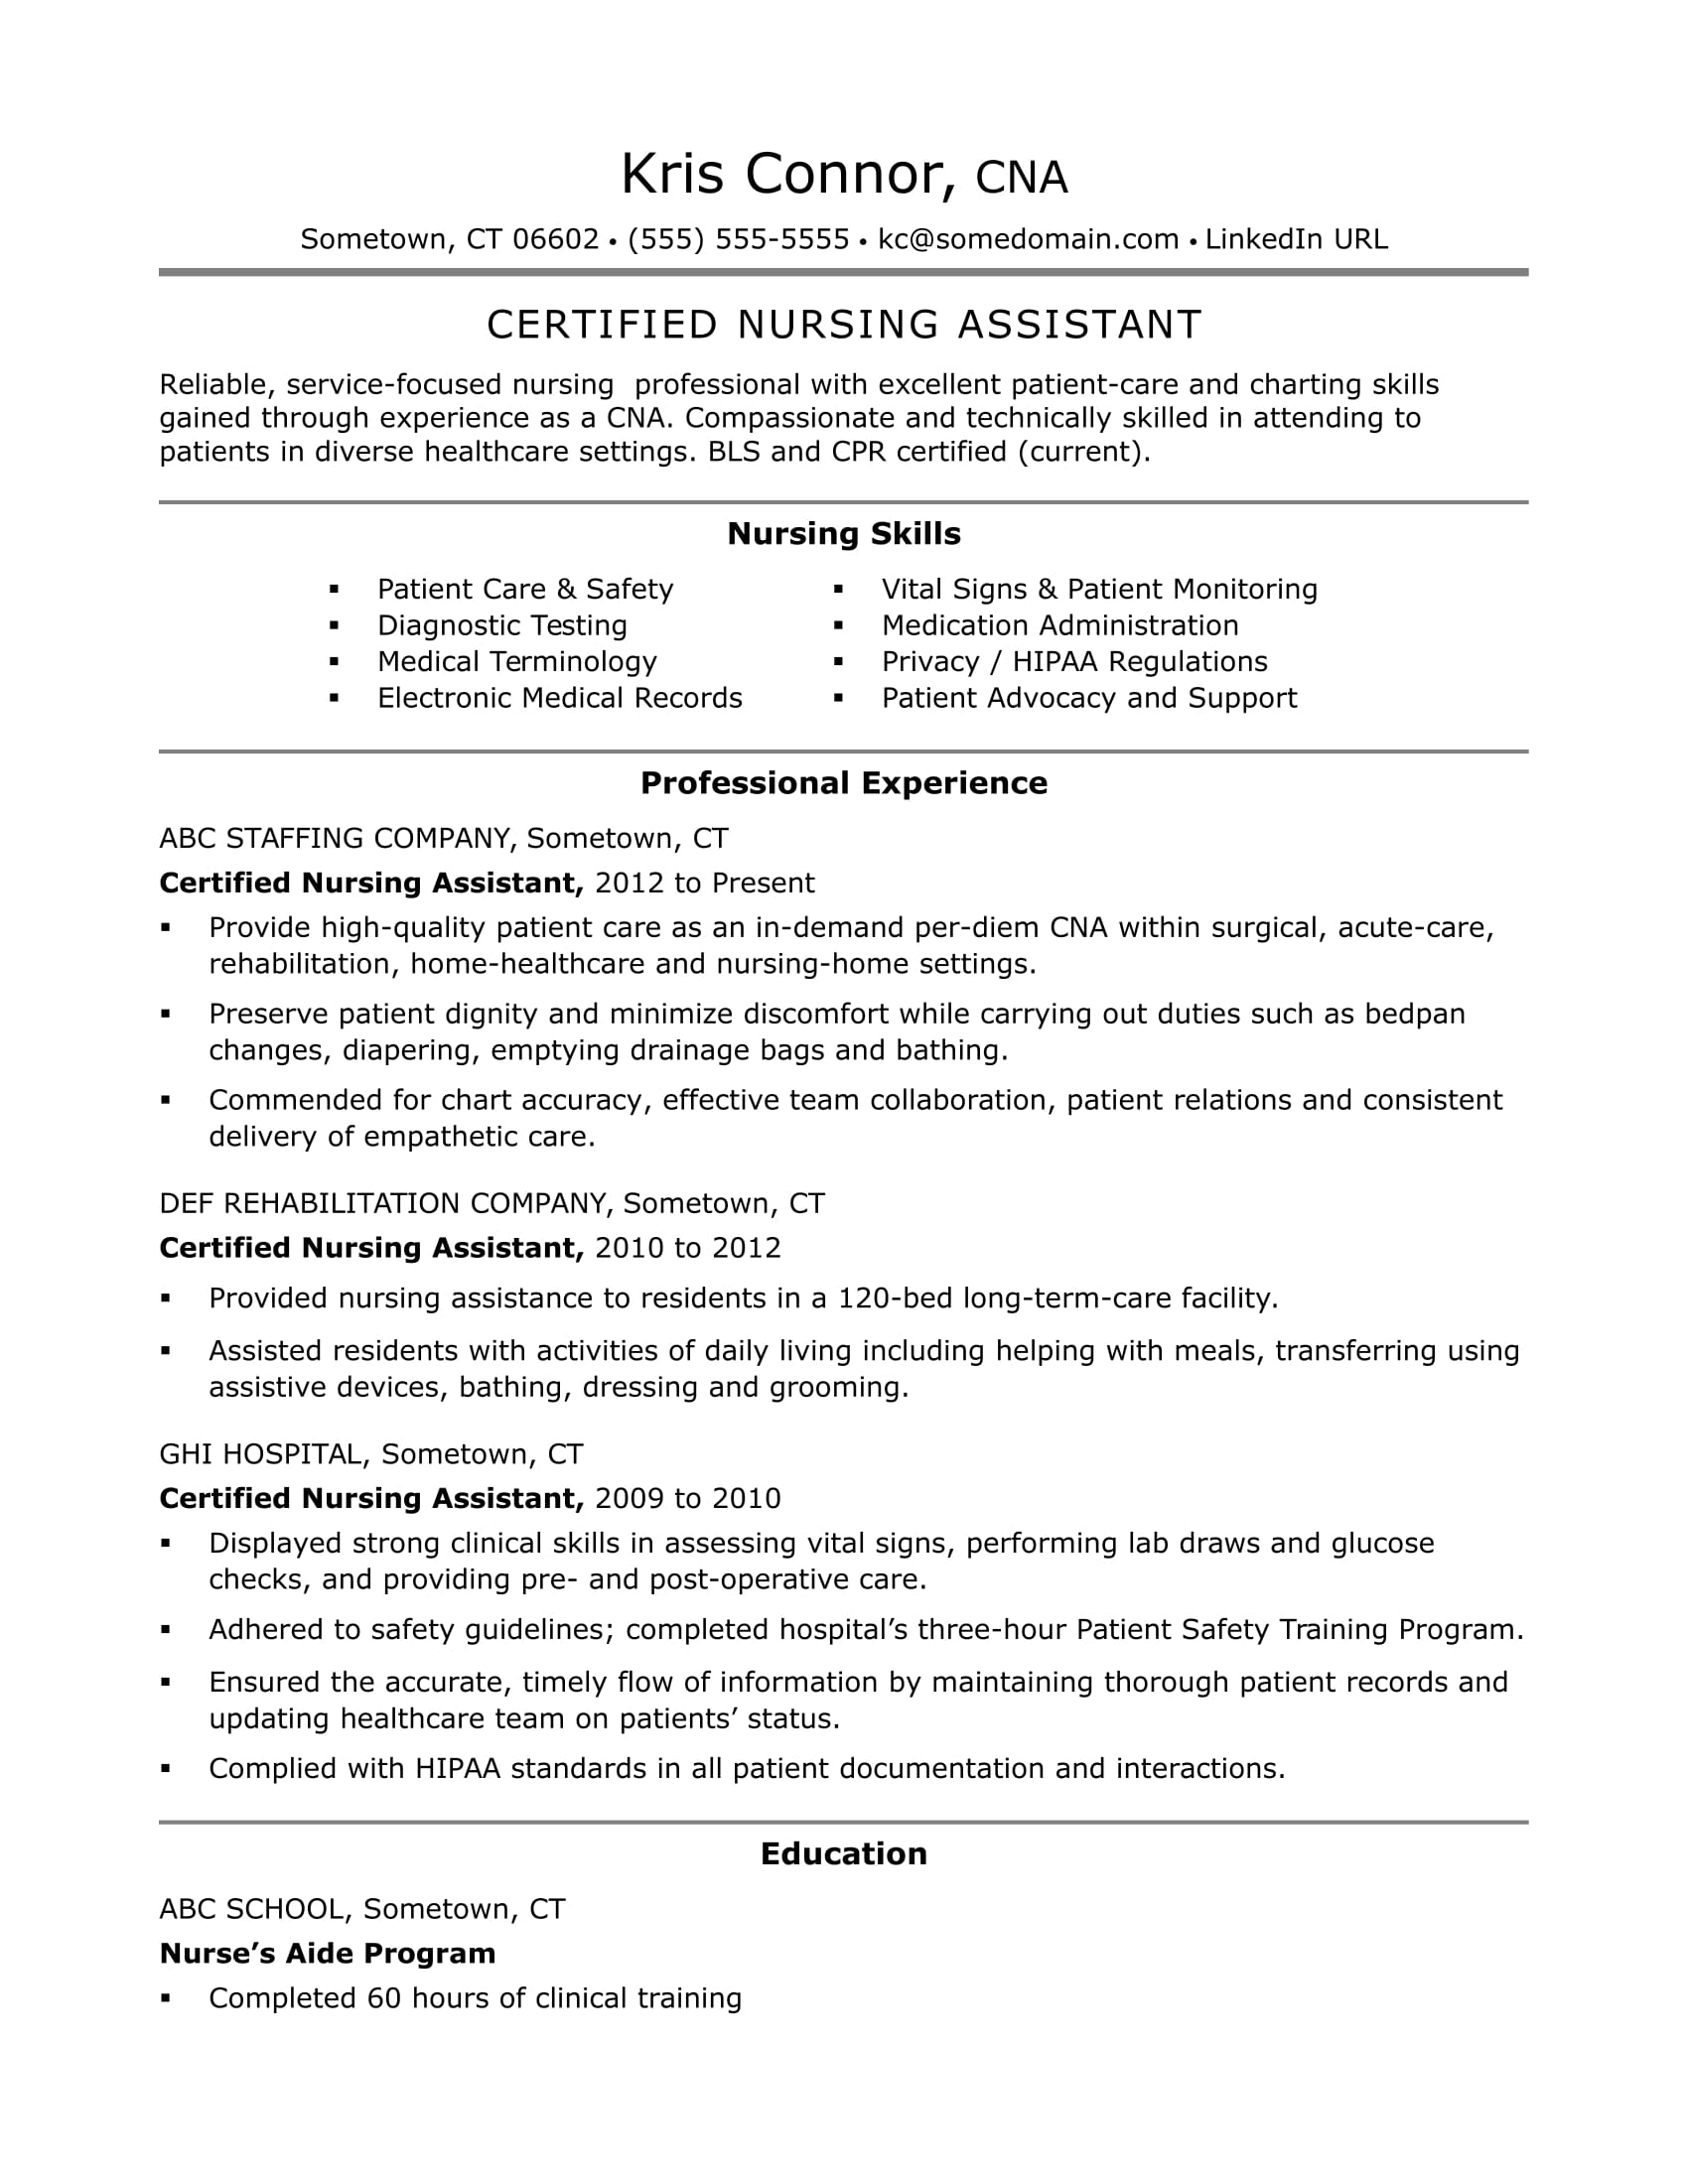 cna resume examples skills for cnas monster hospital certified nursing assistant Resume Cna Resume For Hospital